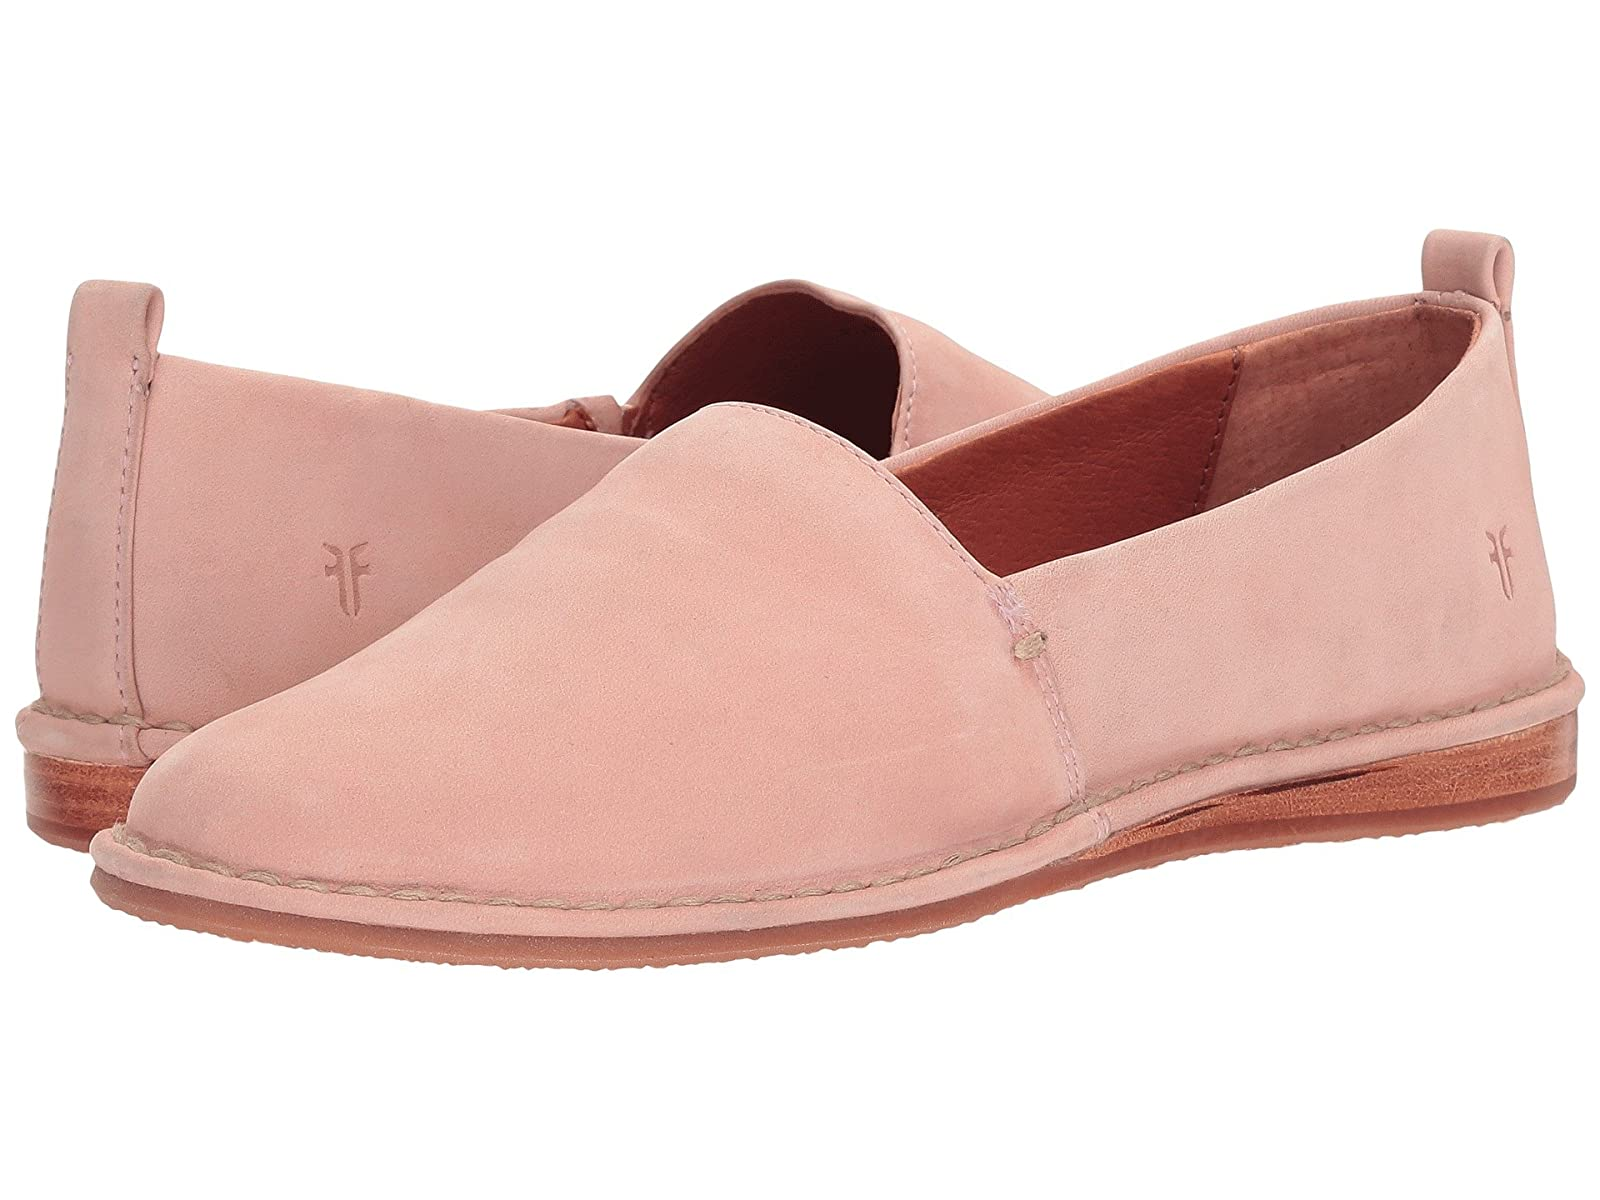 Frye Helena A LineCheap and distinctive eye-catching shoes